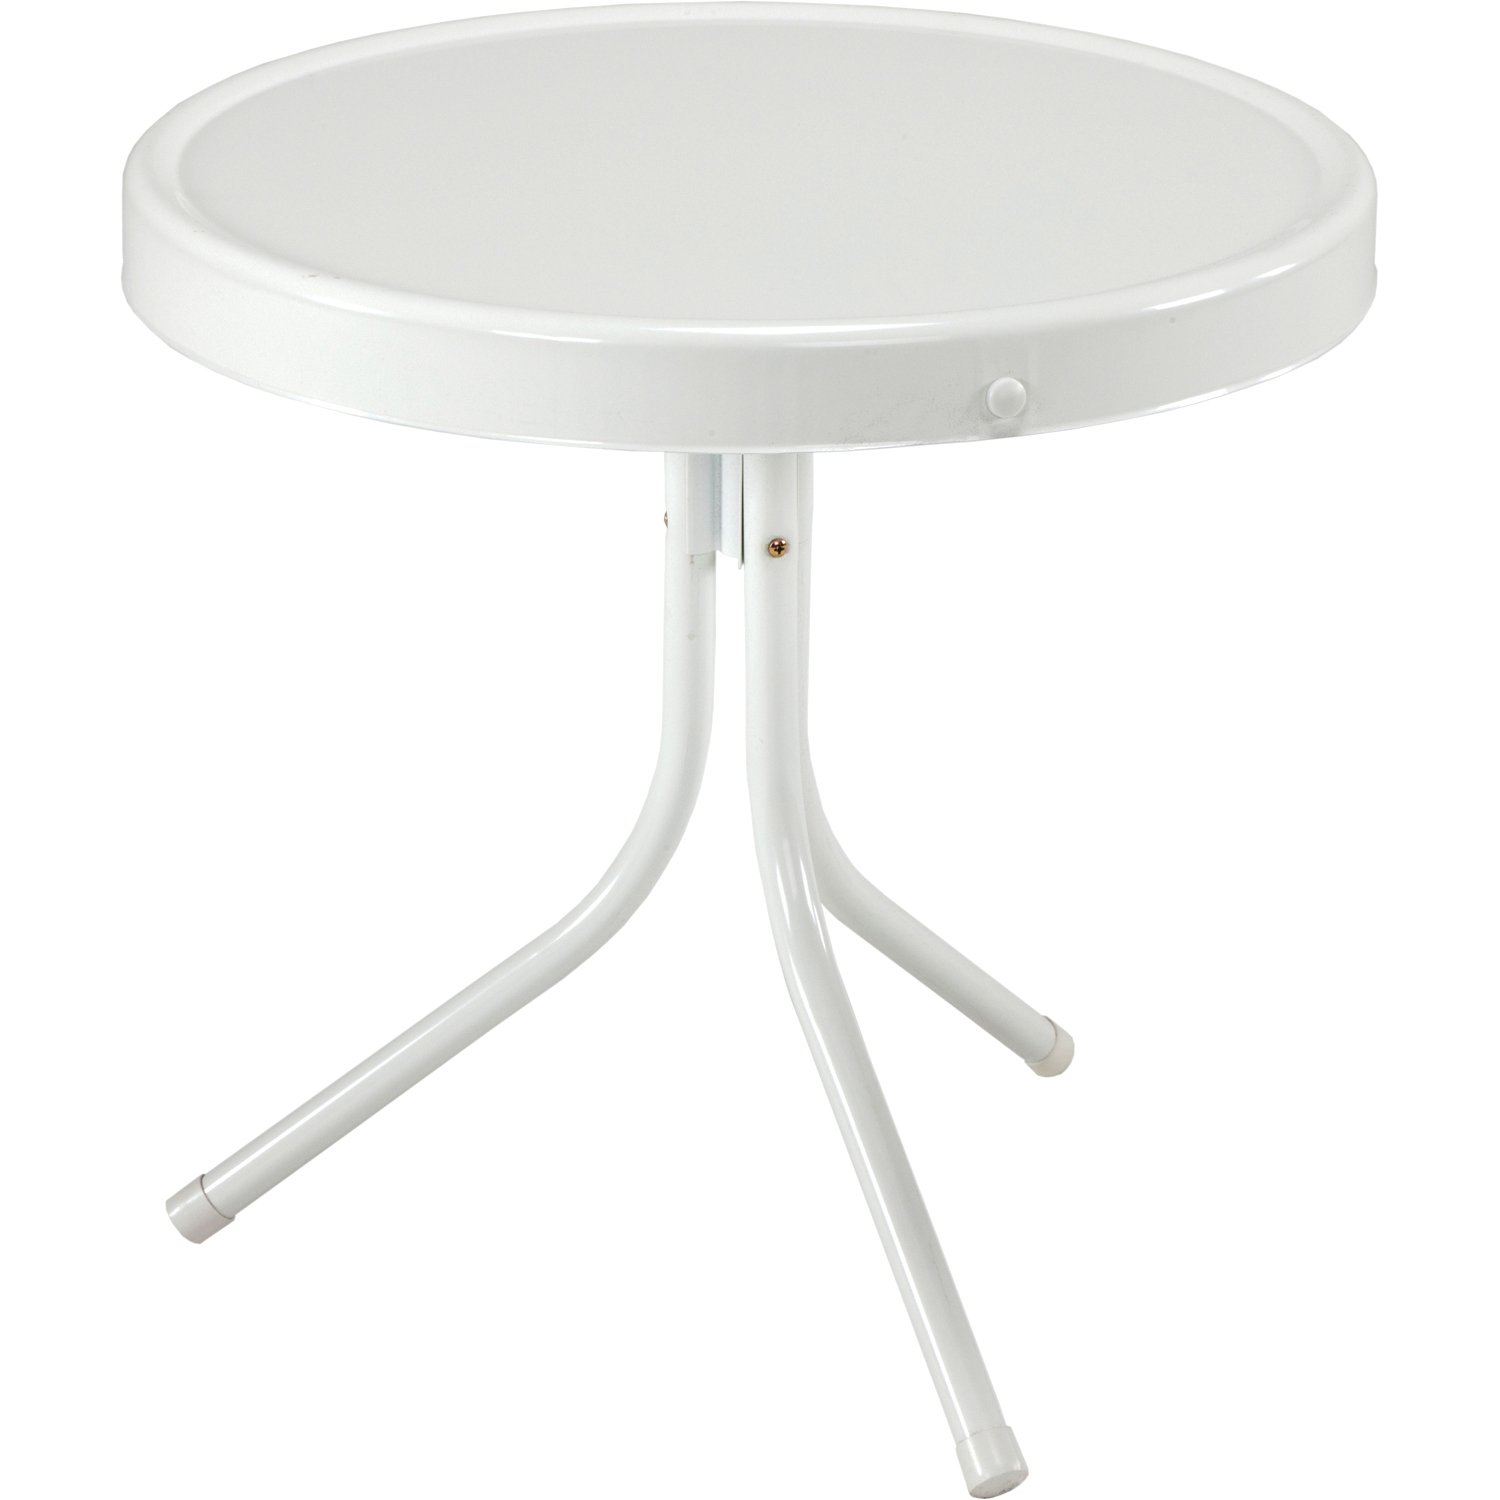 Jack Post BH-2W Retro Table, 20-1/2 by 20-Inch, White